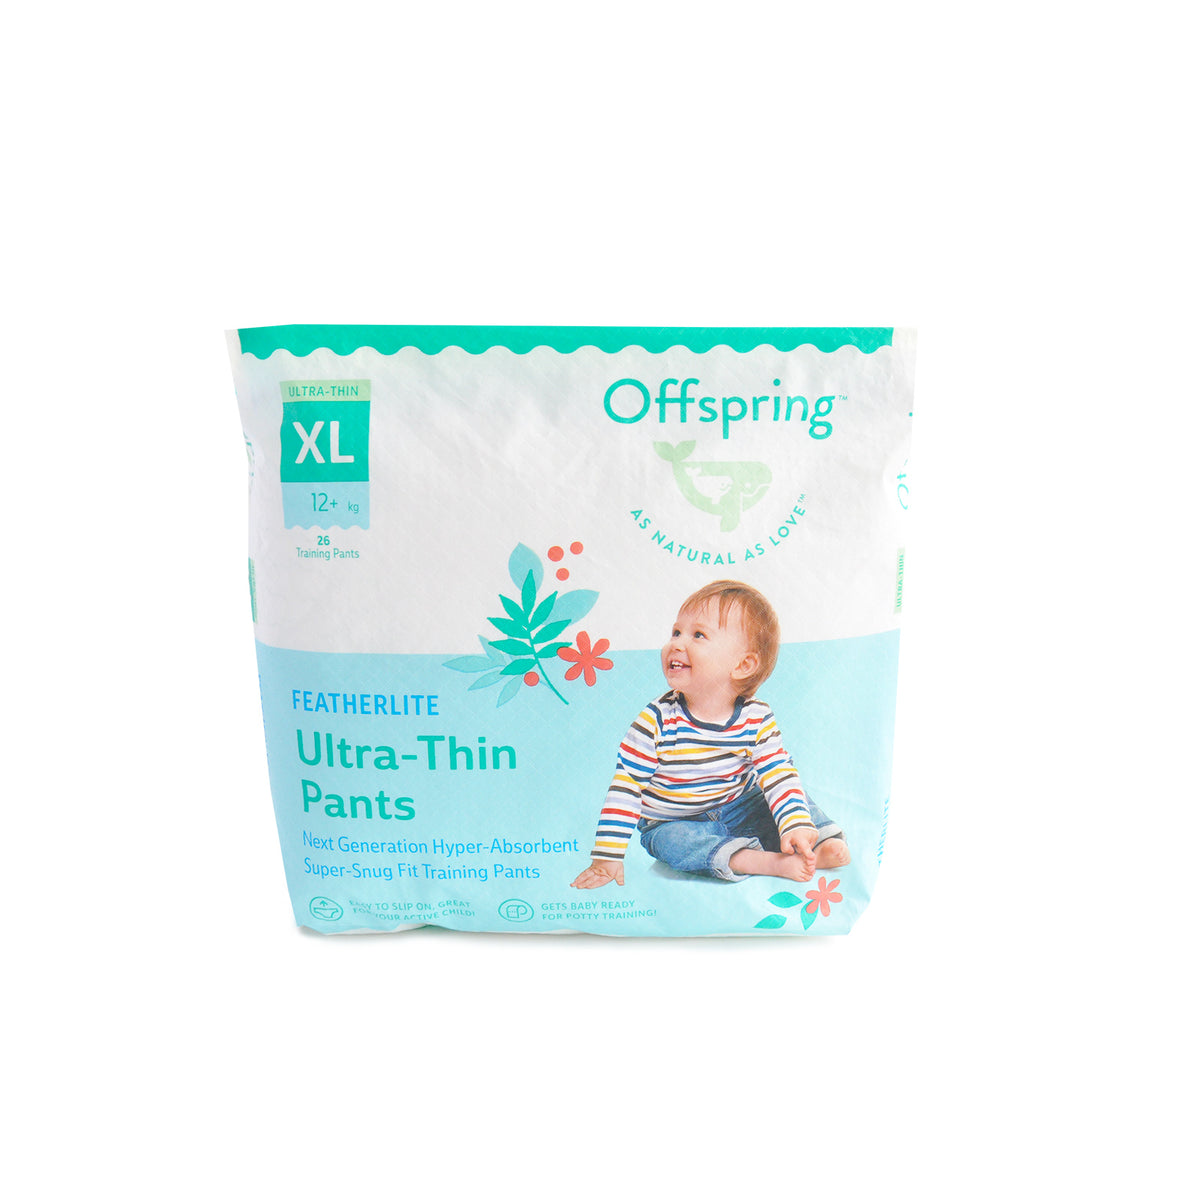 Offspring Ultra-Thin Pants